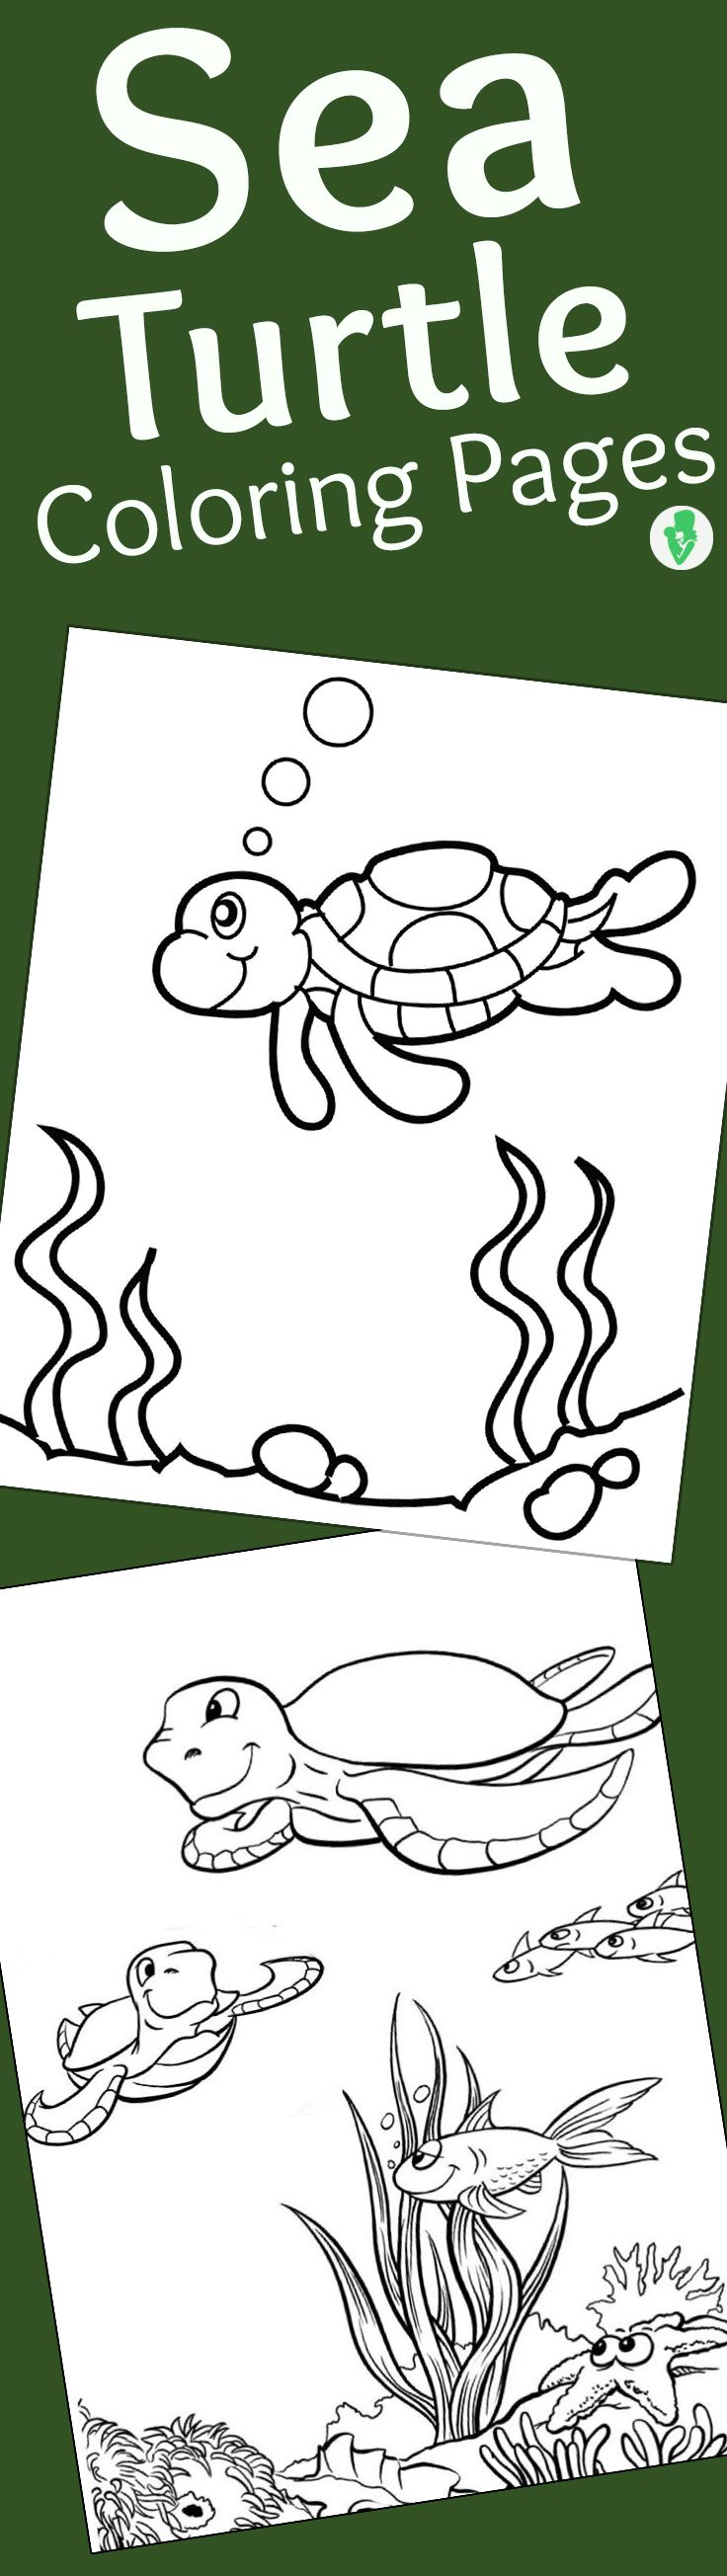 Top 10 free printable cute sea turtle coloring pages for Sea turtles coloring pages